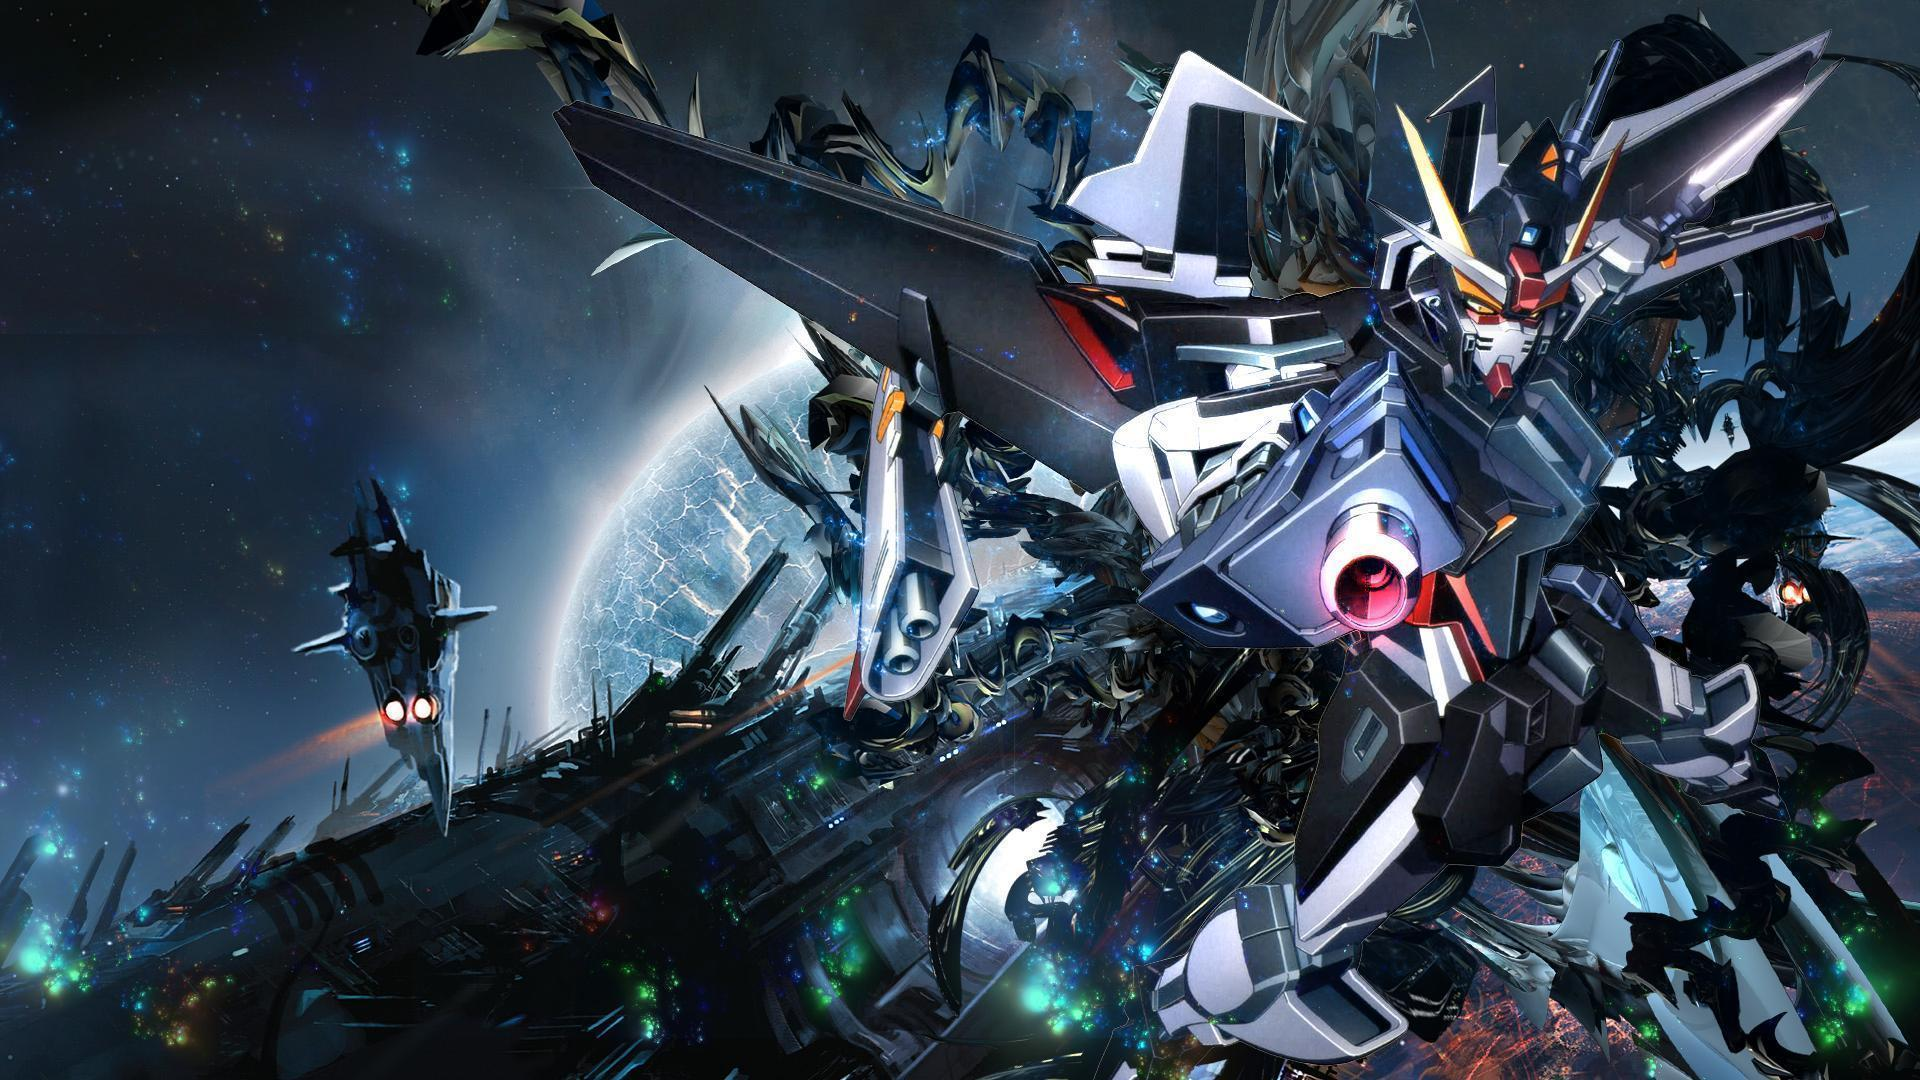 Gundam HD Wallpapers - Wallpaper Cave